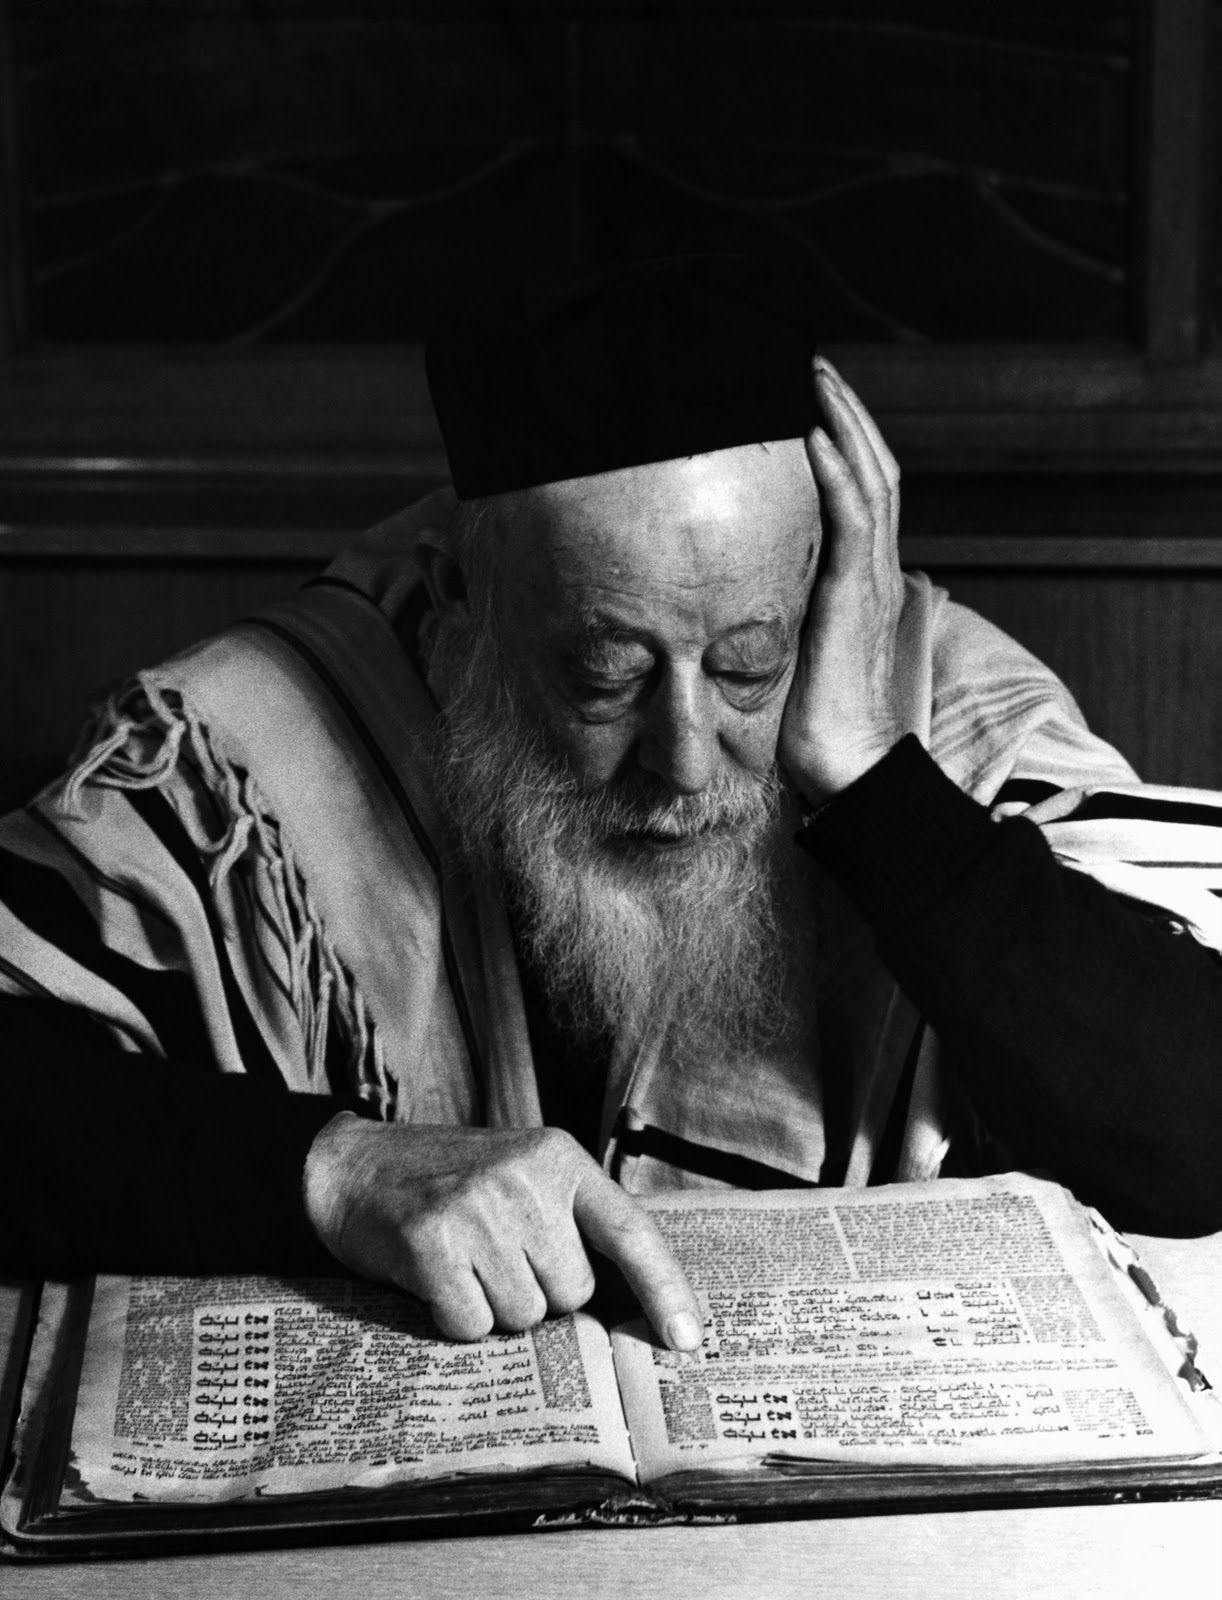 Image result for Image result for tallit and rabbi grey beard reading